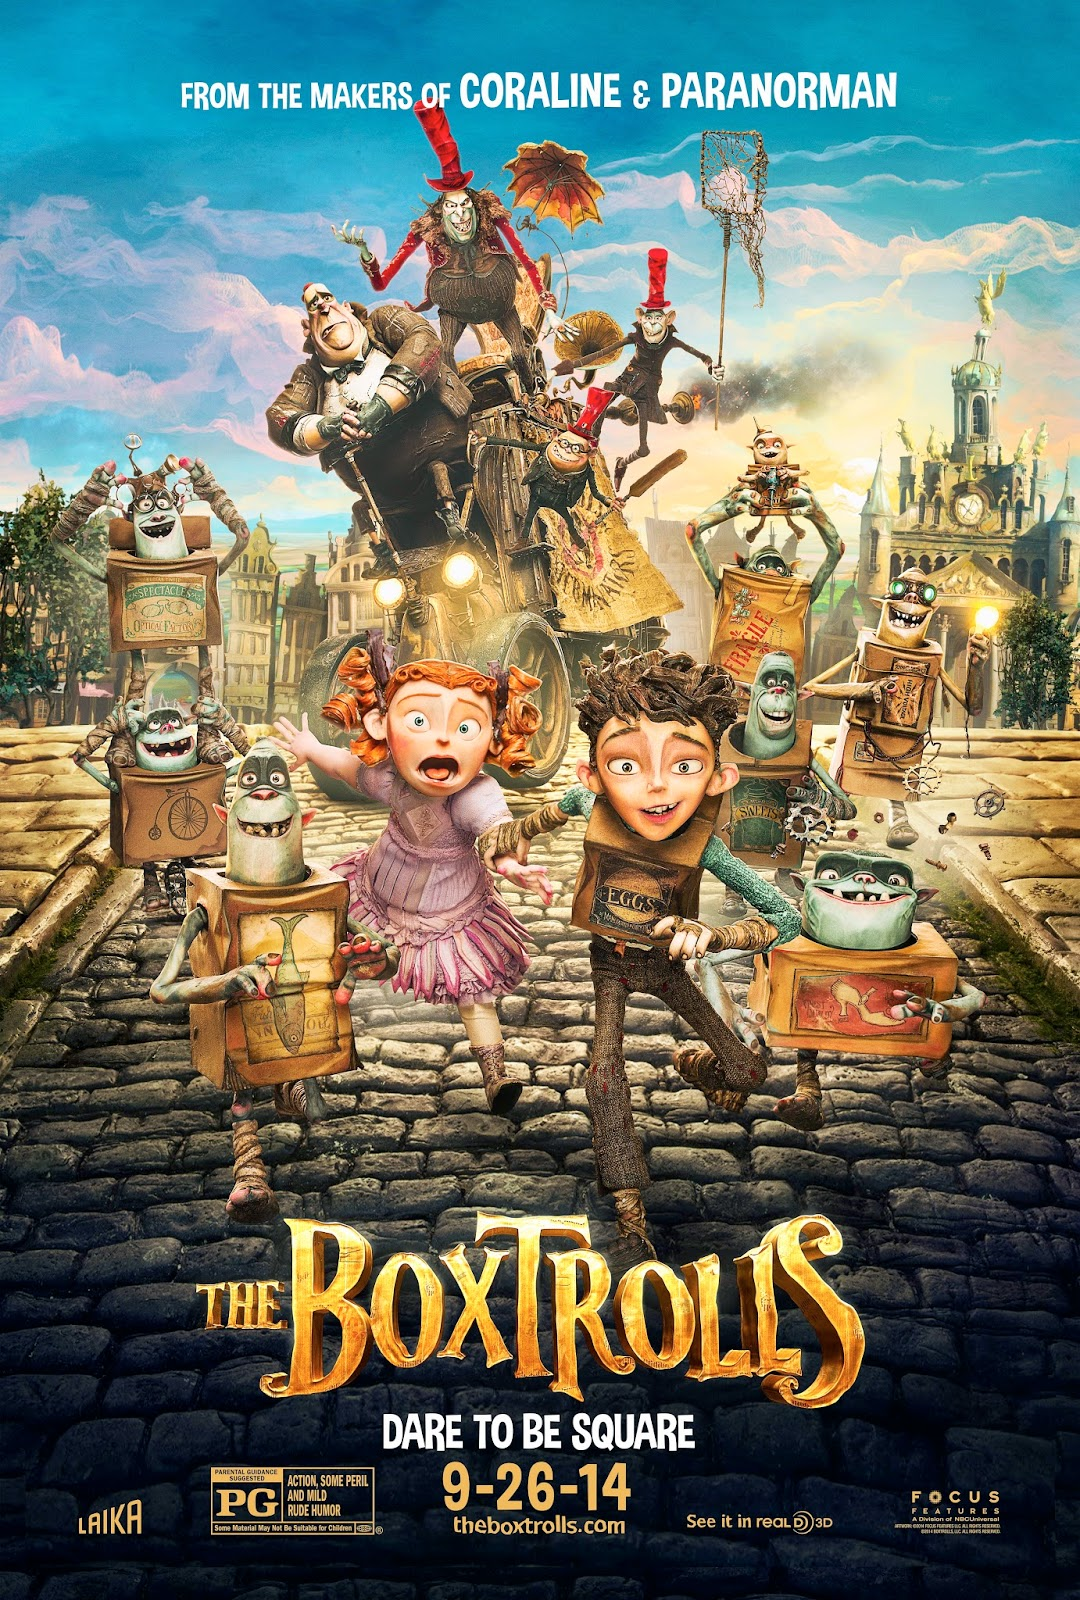 First Look at the Characters and Voice Cast of BOXTROLLS